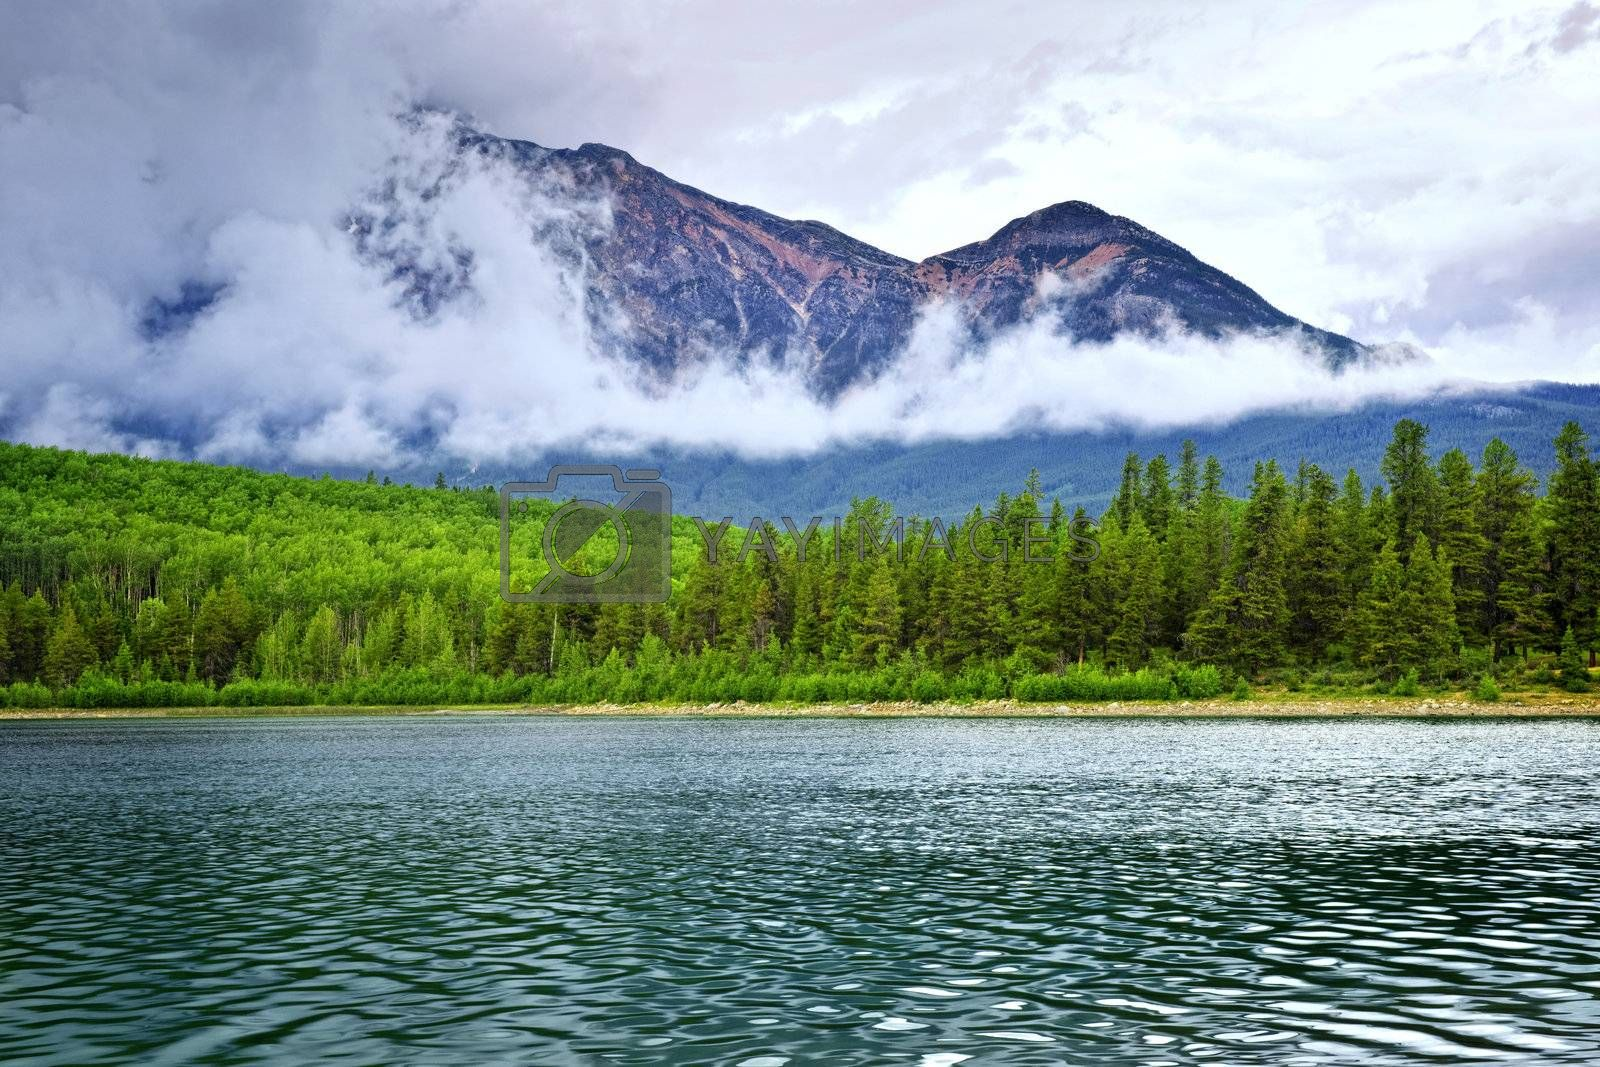 Patricia Lake and Pyramid Mountain in Jasper National Park, Canada